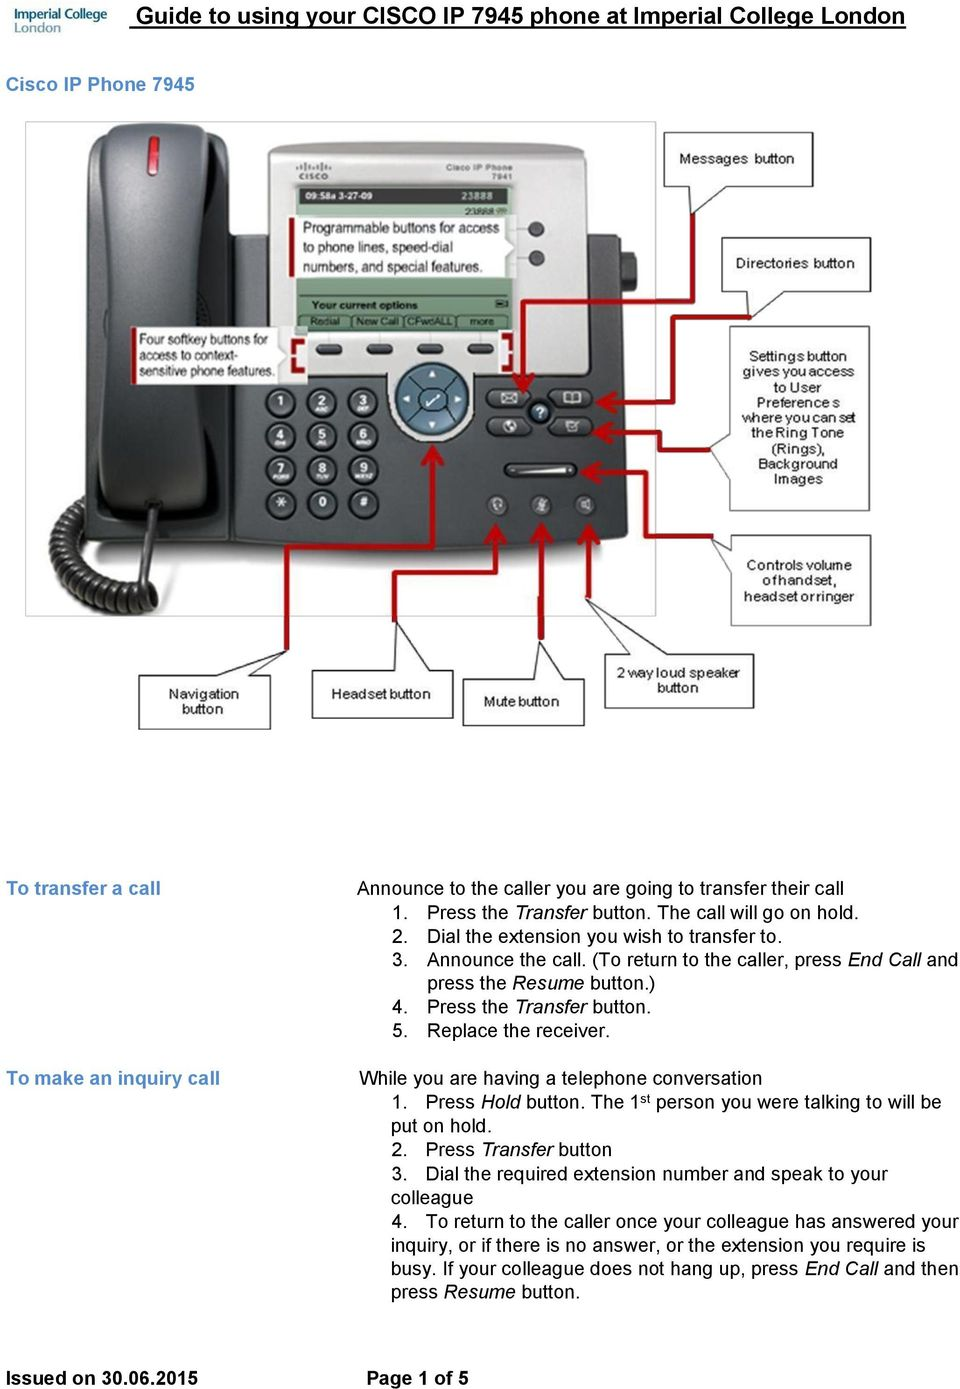 Guide to using your CISCO IP 7945 phone at Imperial College